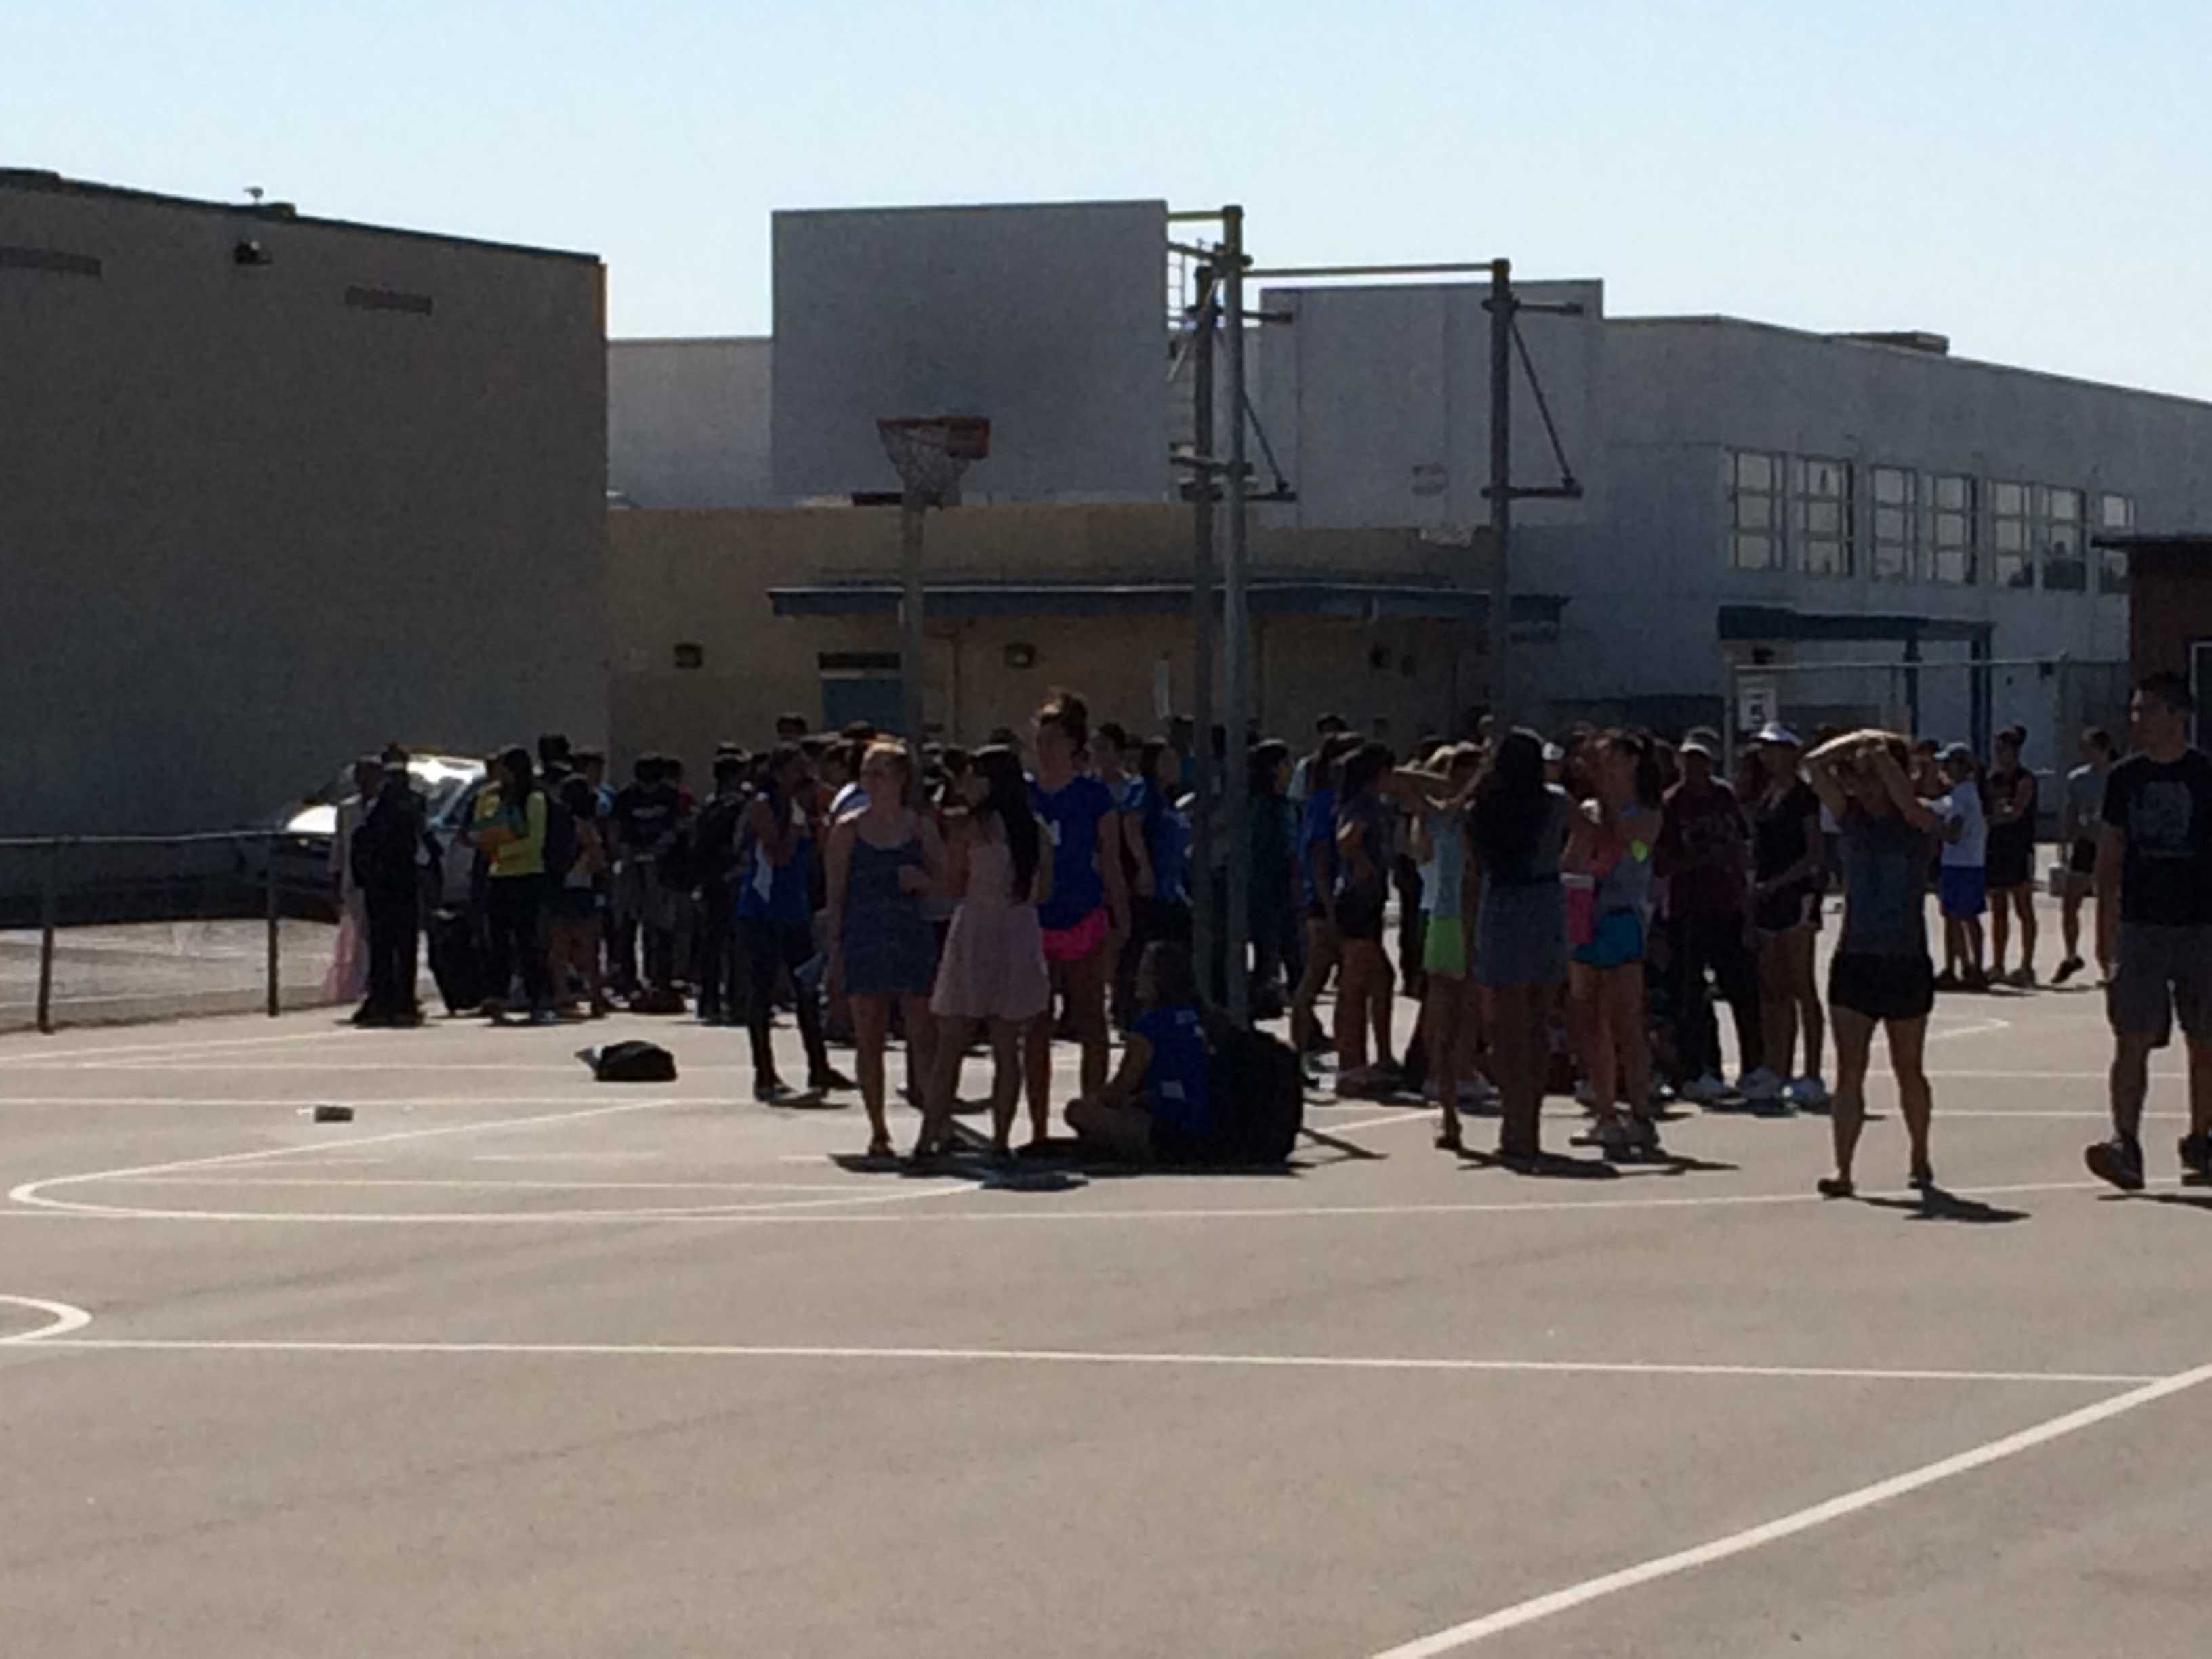 Irvington students still on campus evacuated onto the blacktop after the alarm sounded Photo: Rohit Dilip